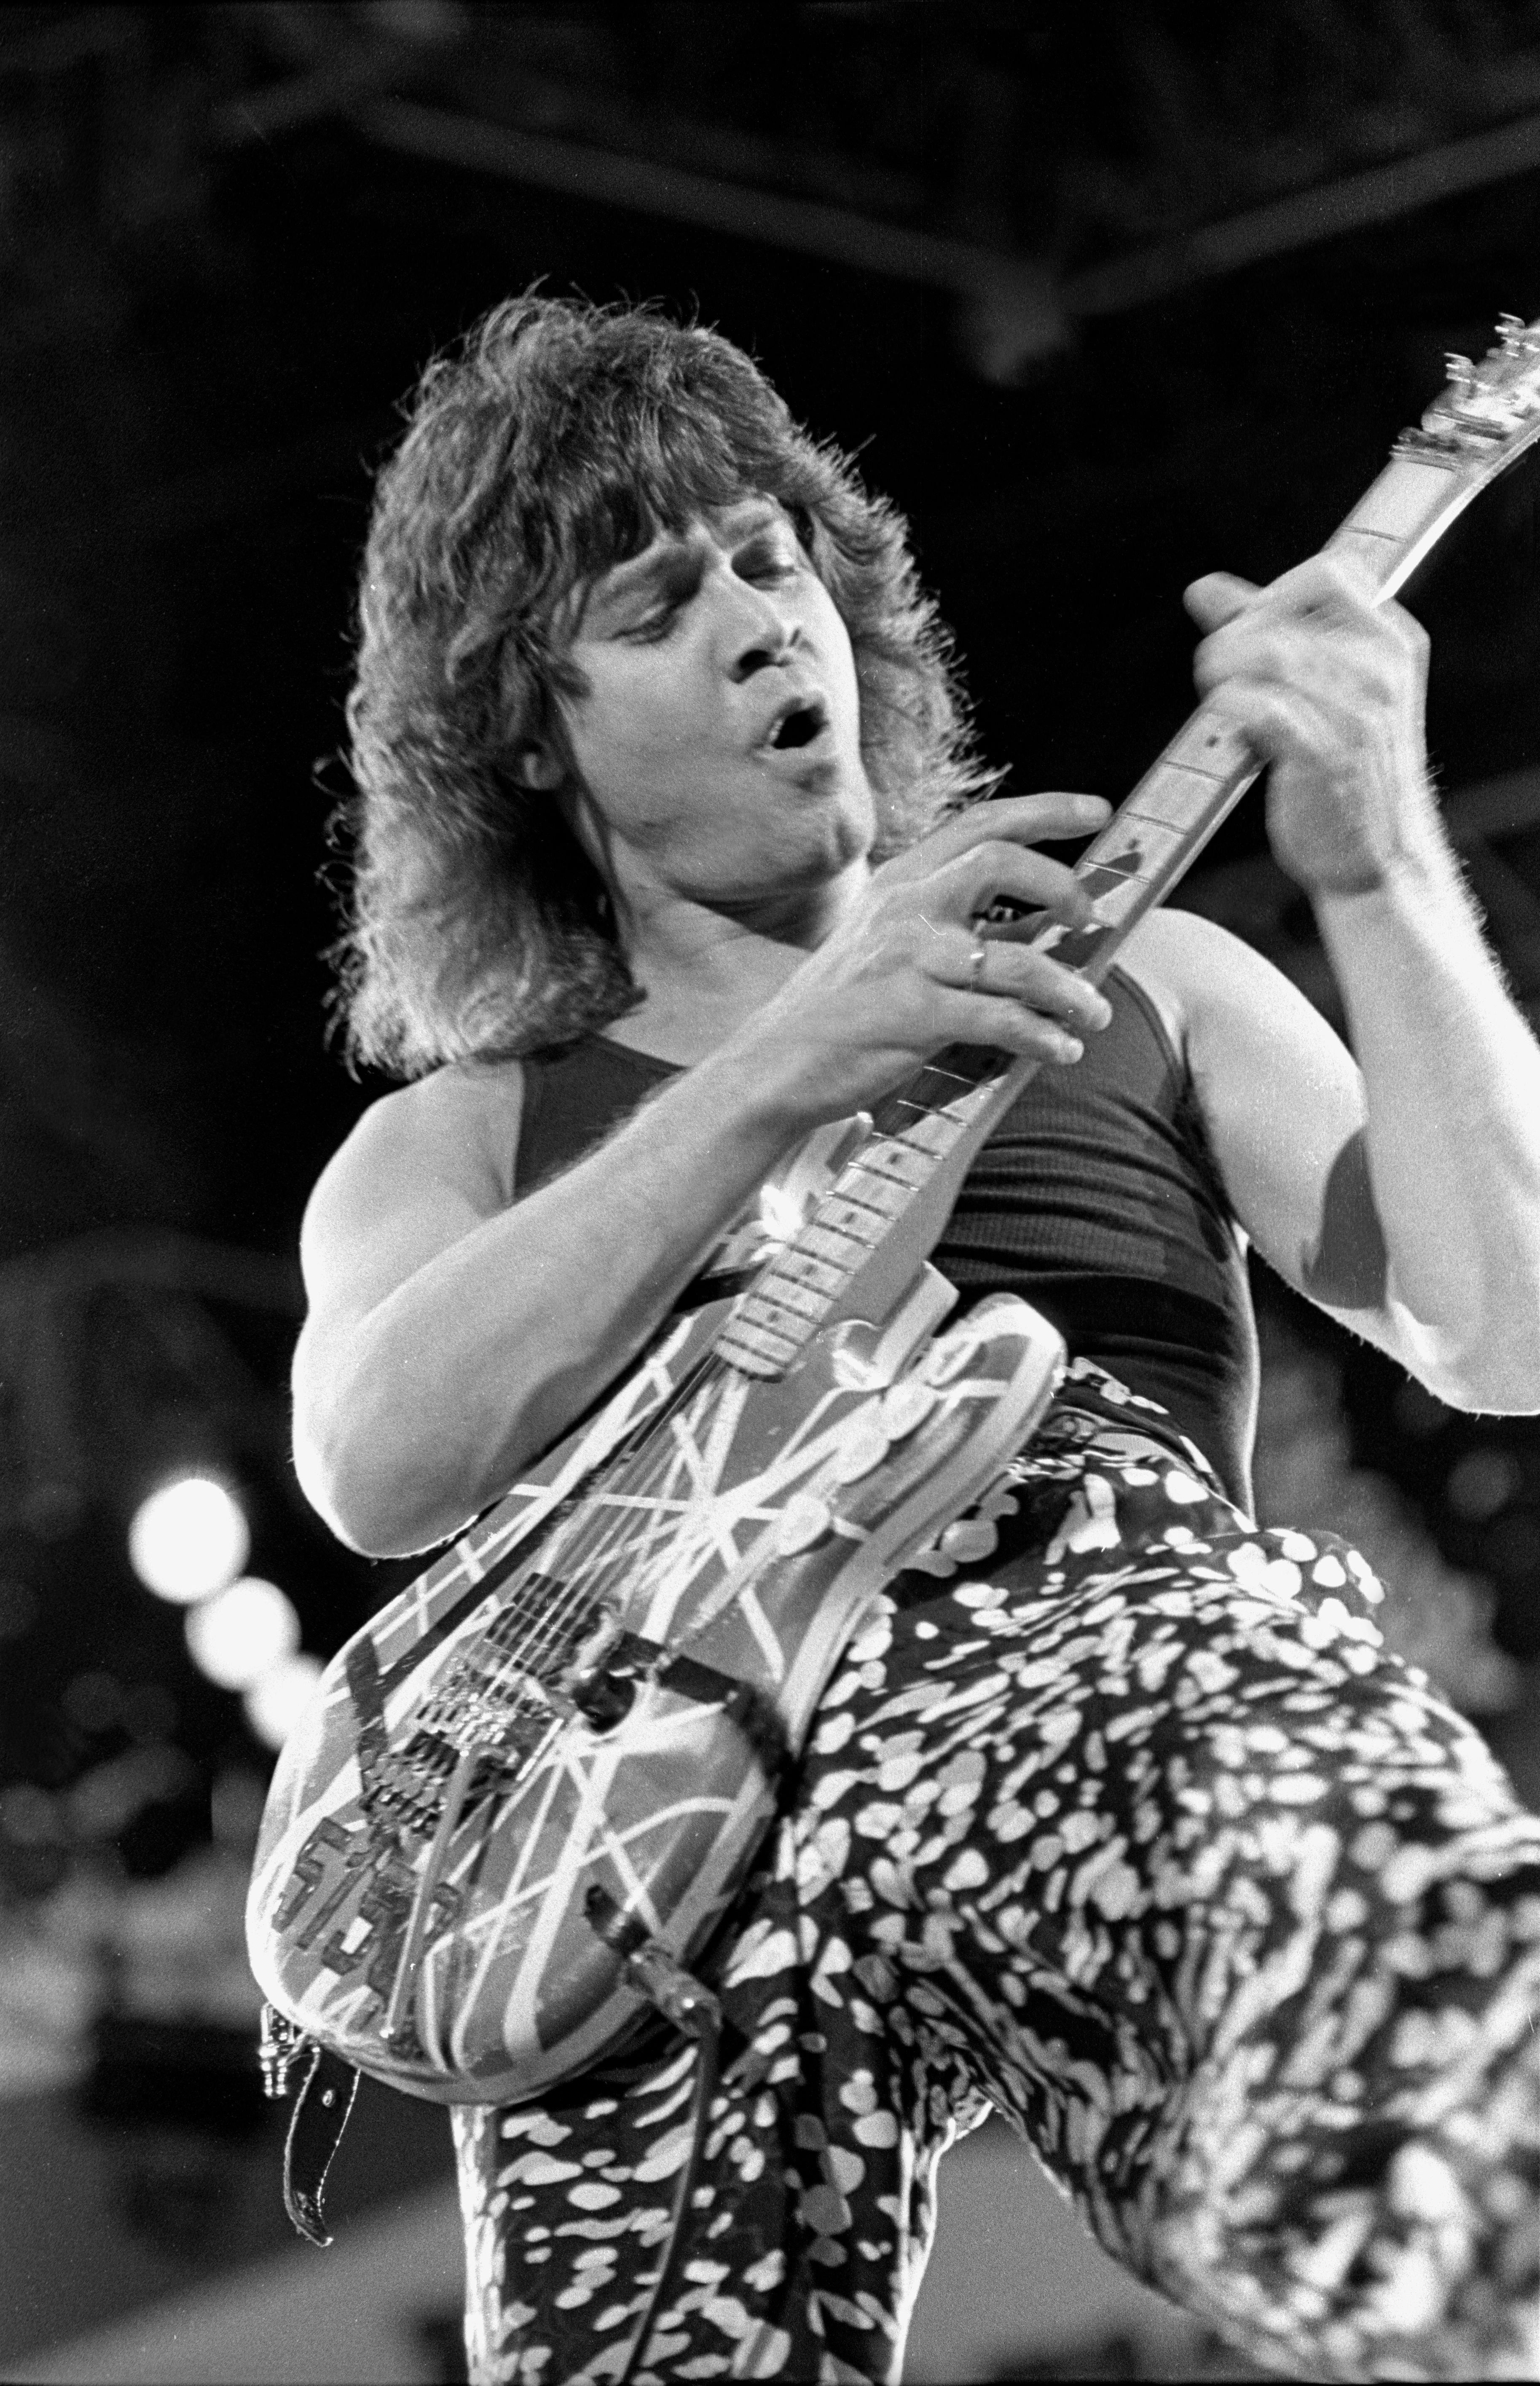 """Eddie Van Halen performing on stage during a """"live"""" concert appearance with Van Halen in 1988   Source: Getty Images"""